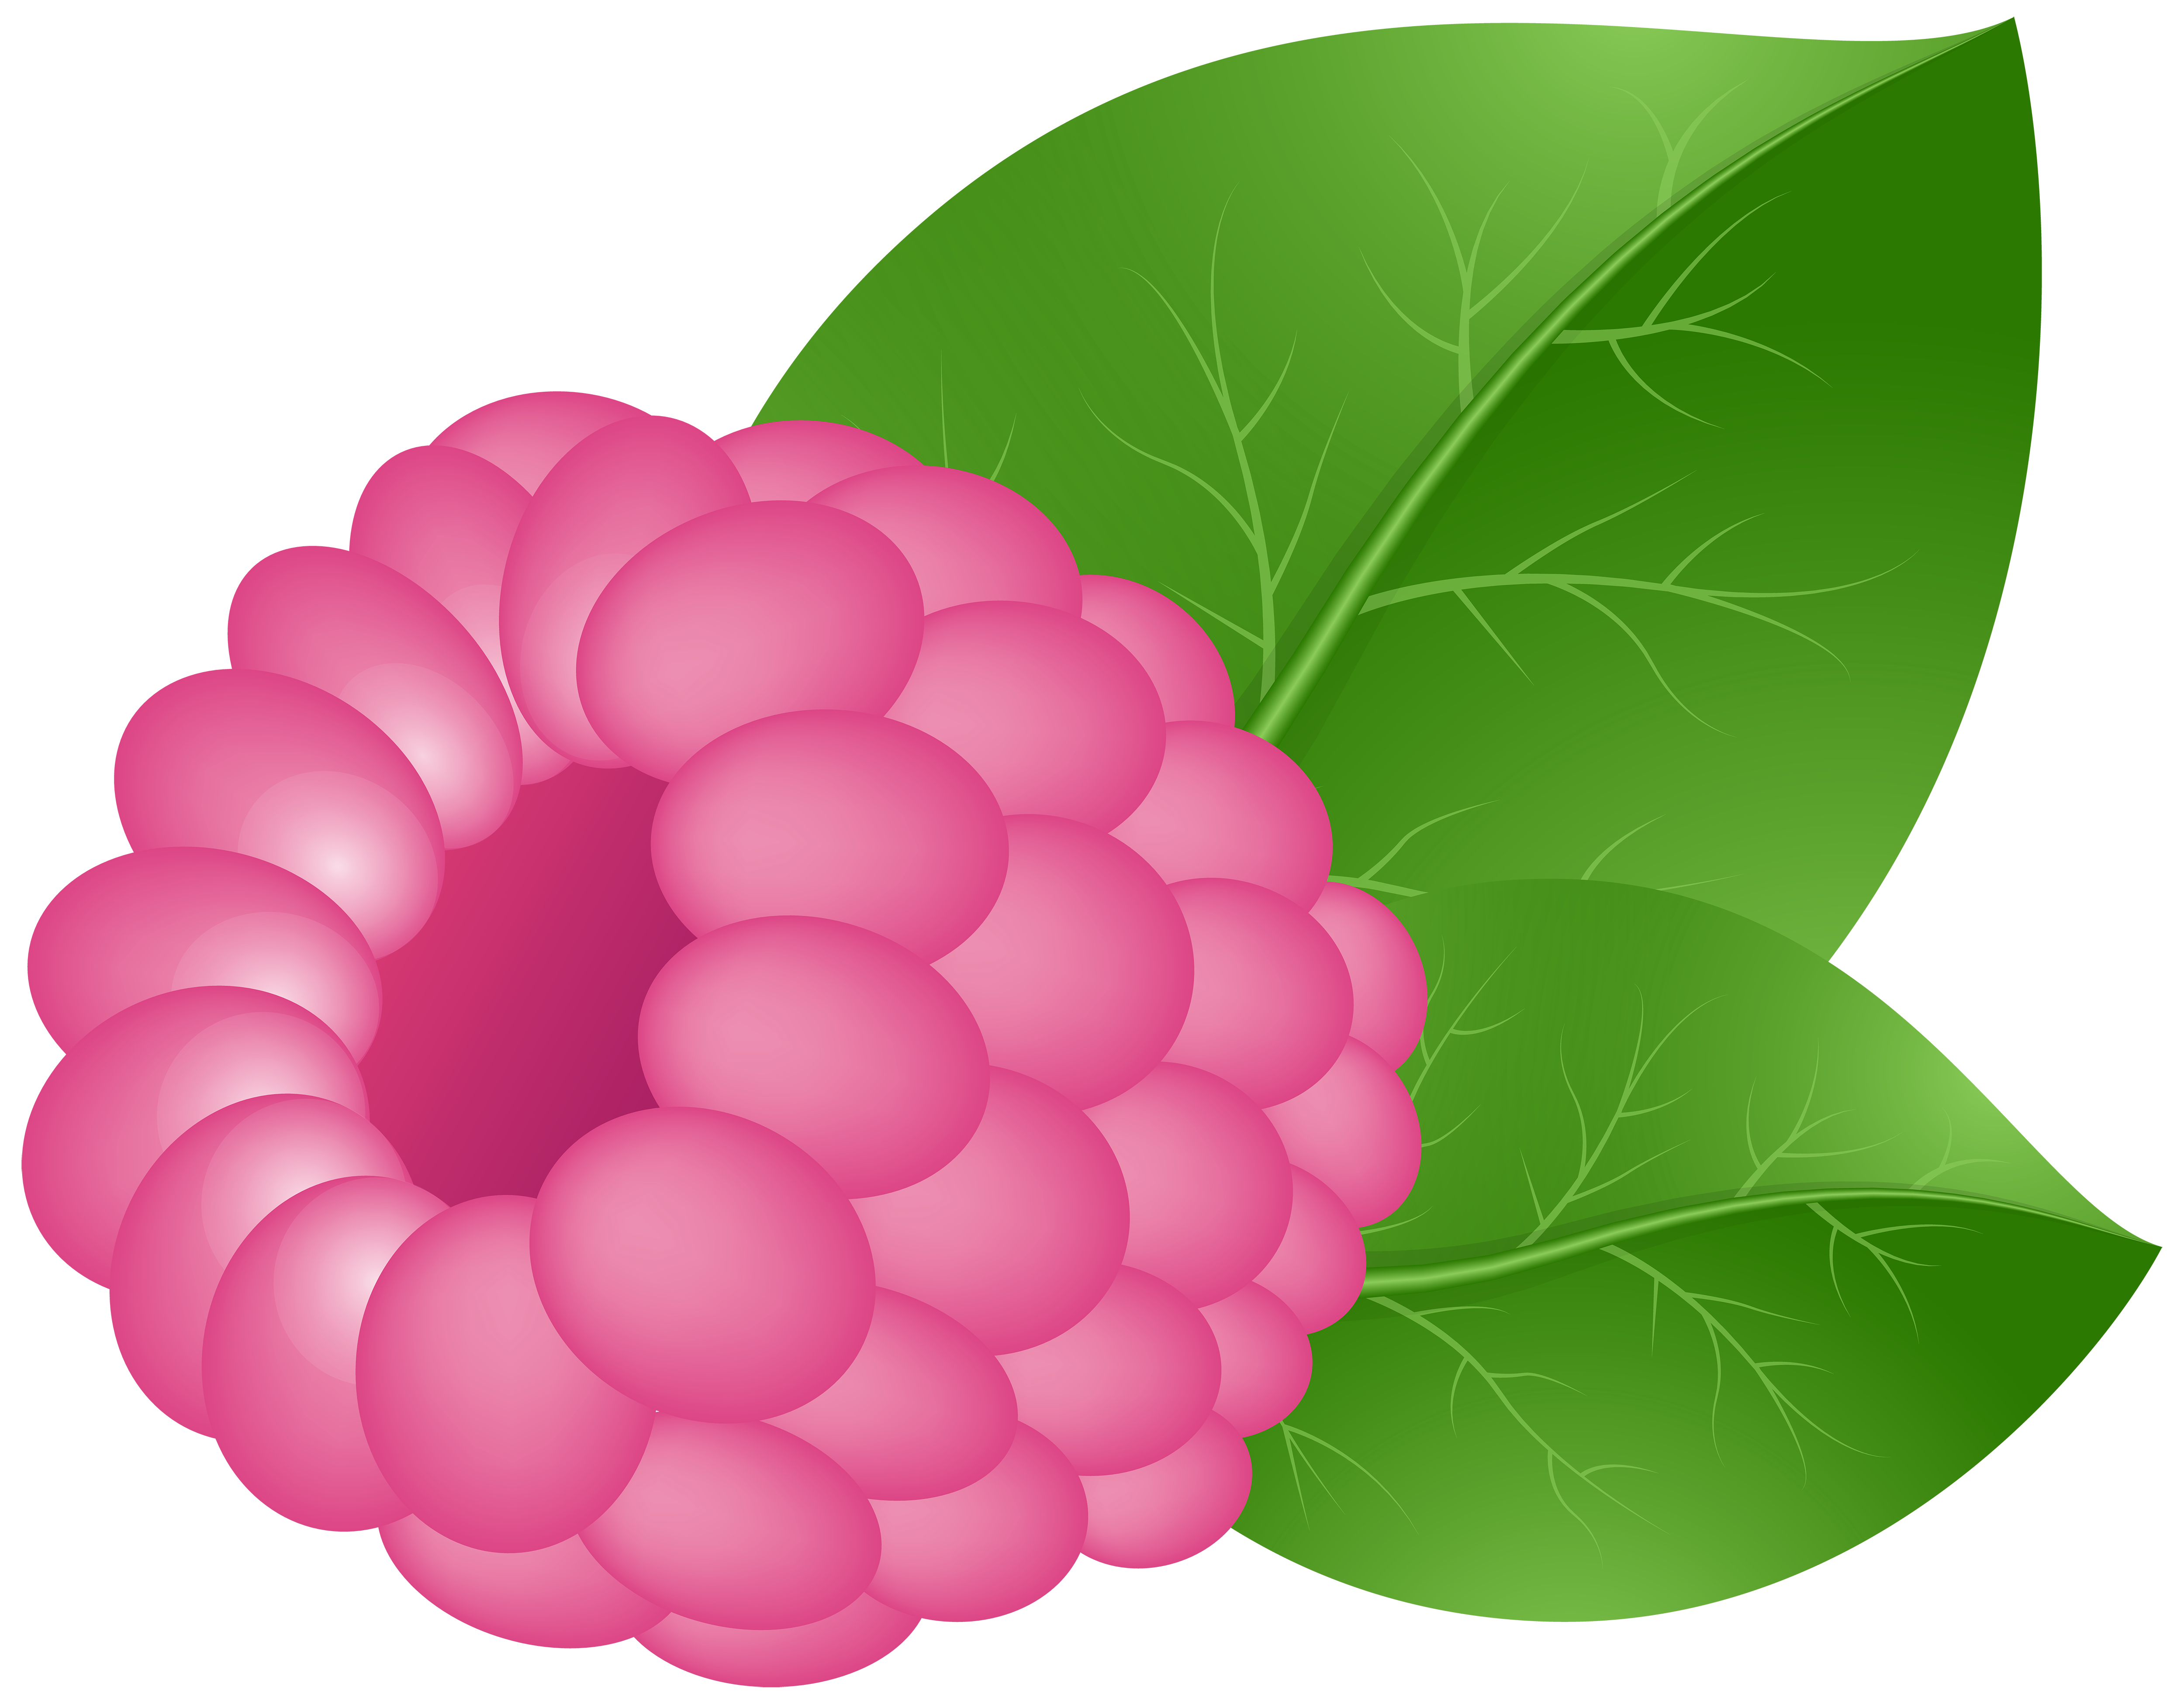 picture freeuse stock Raspberry Fruit Clip art